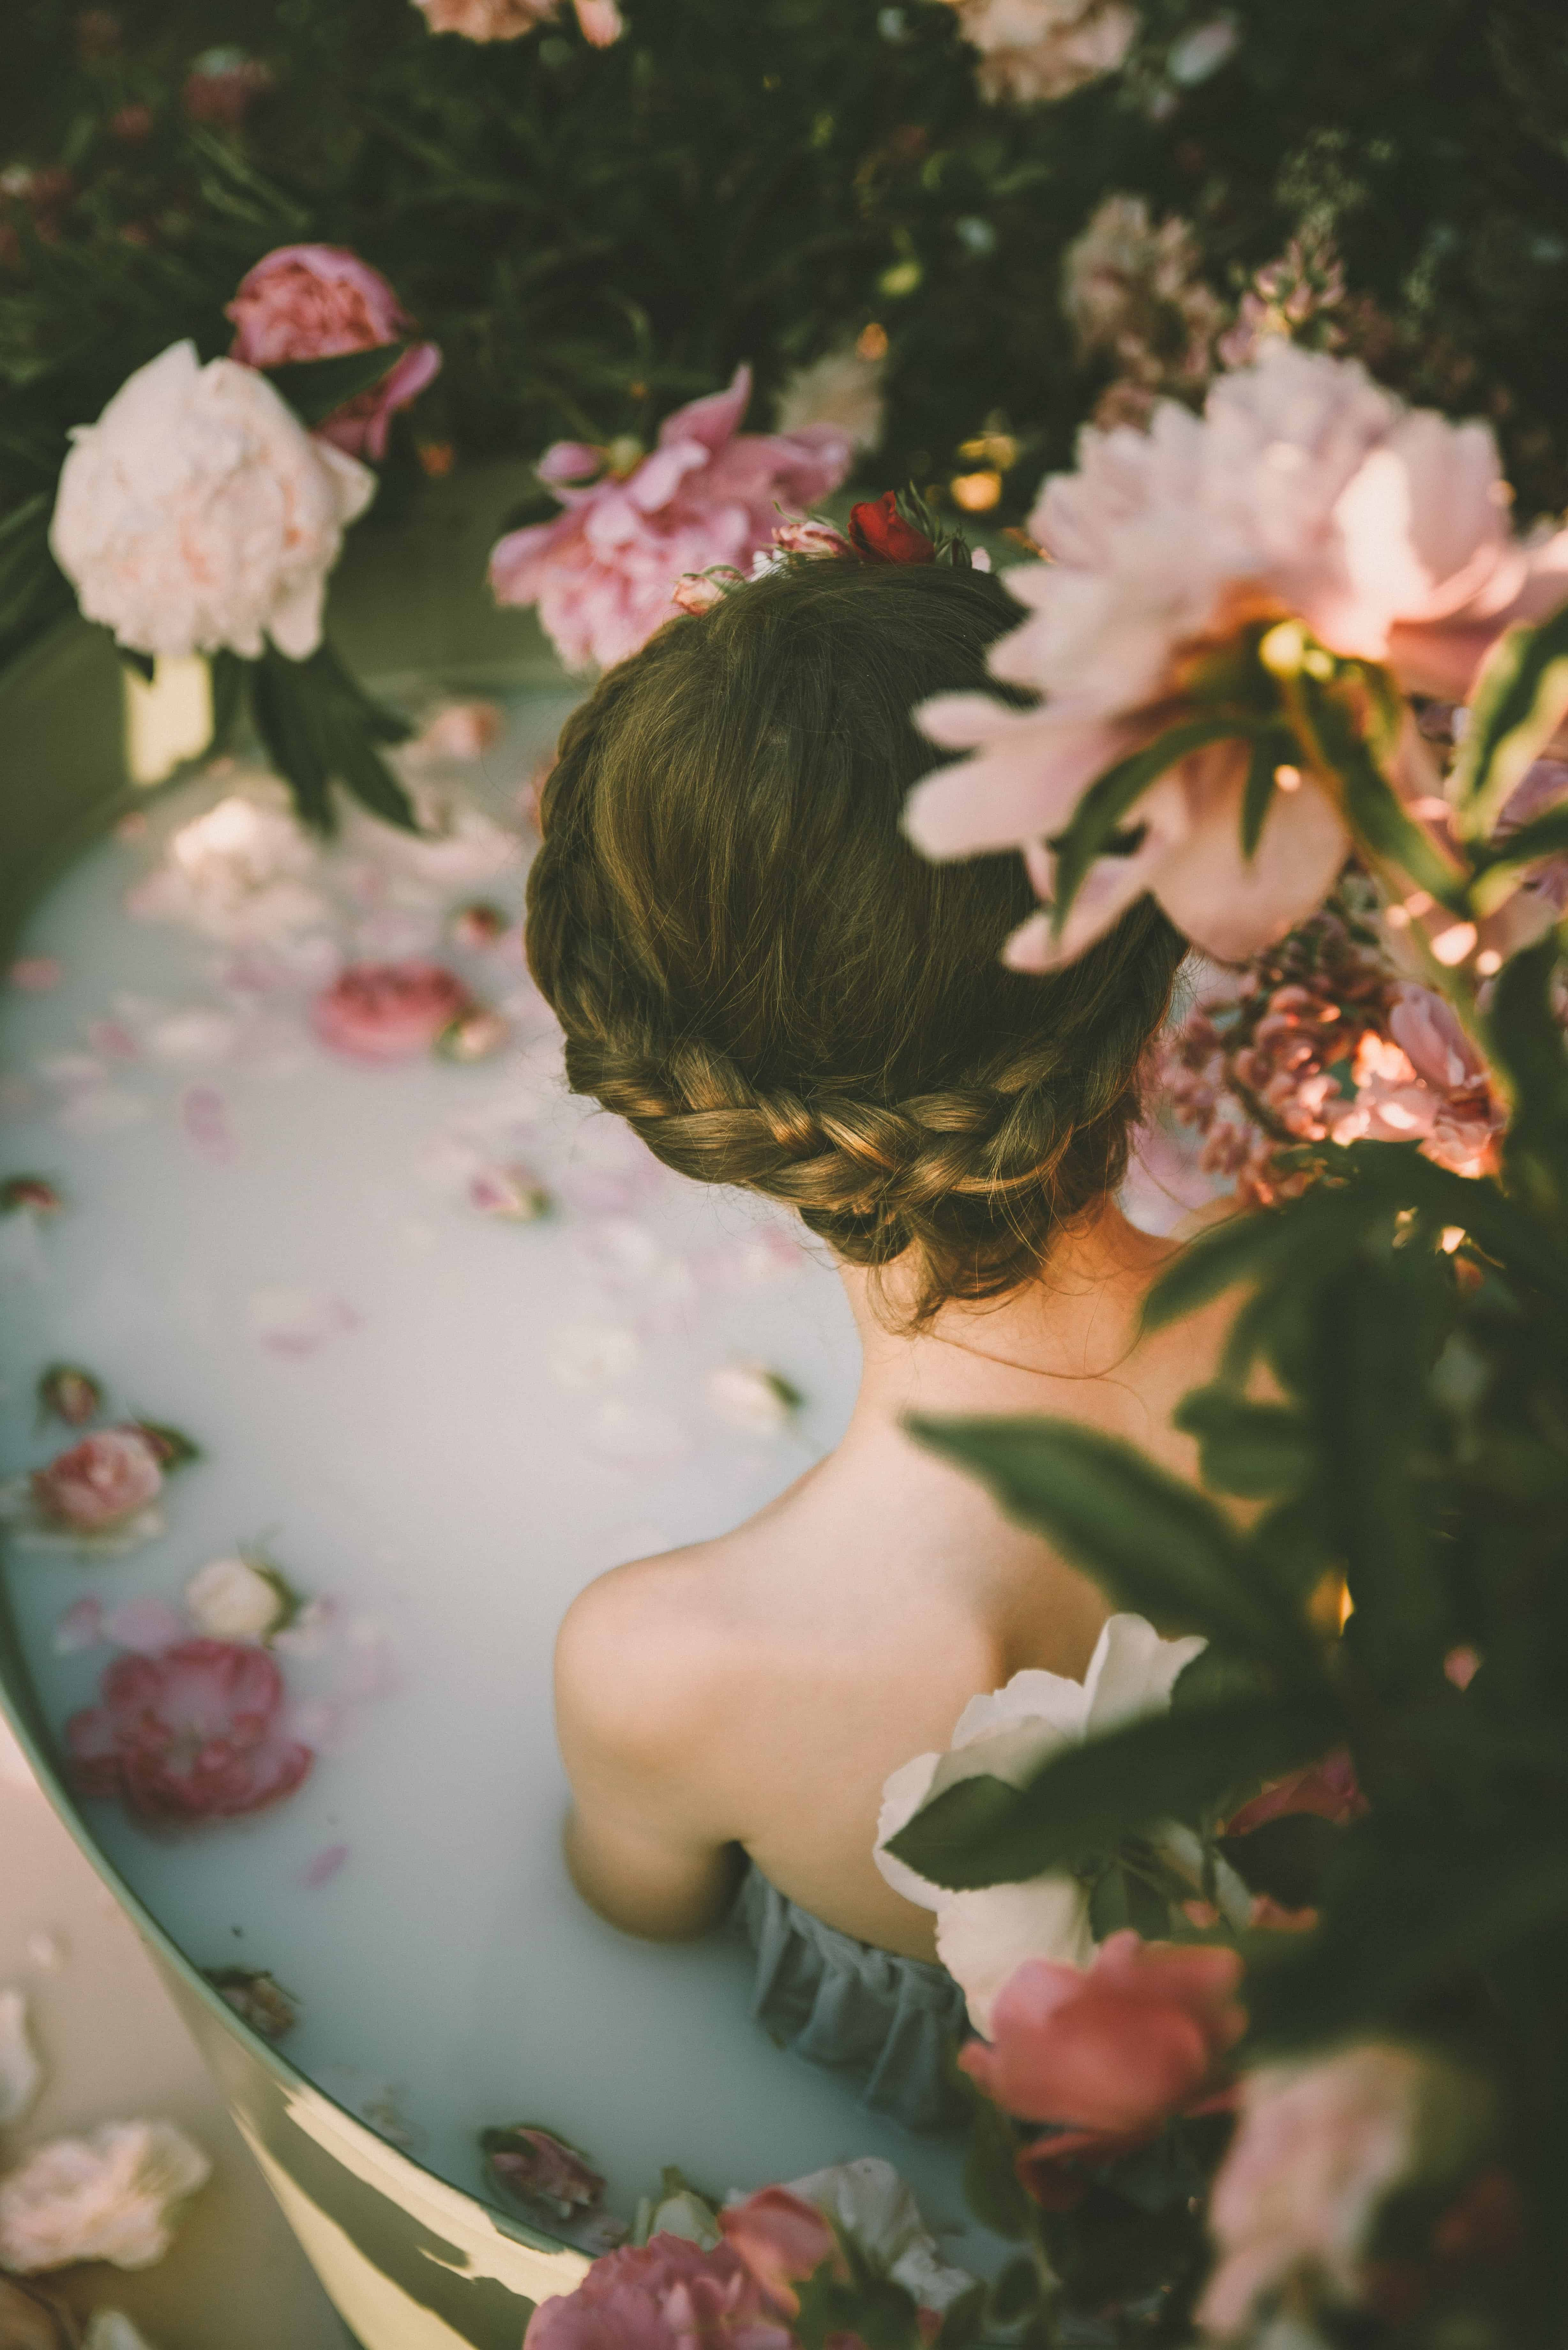 Woman in an exotic flower-filled bathtub